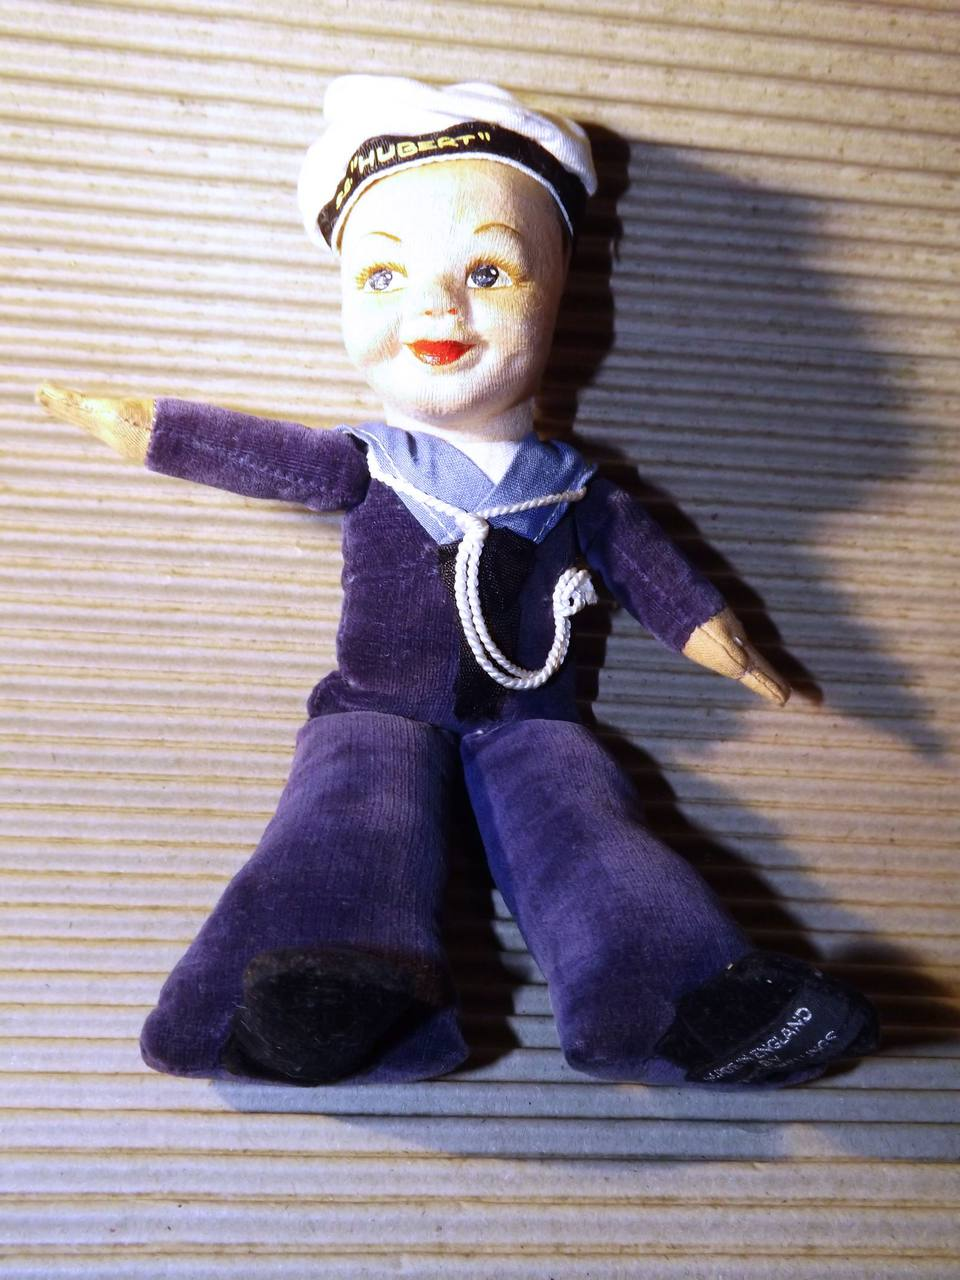 A pre-war Jolly Boy sailor doll from Norah Wellings in the UK probably 1930s - from SS Hubert